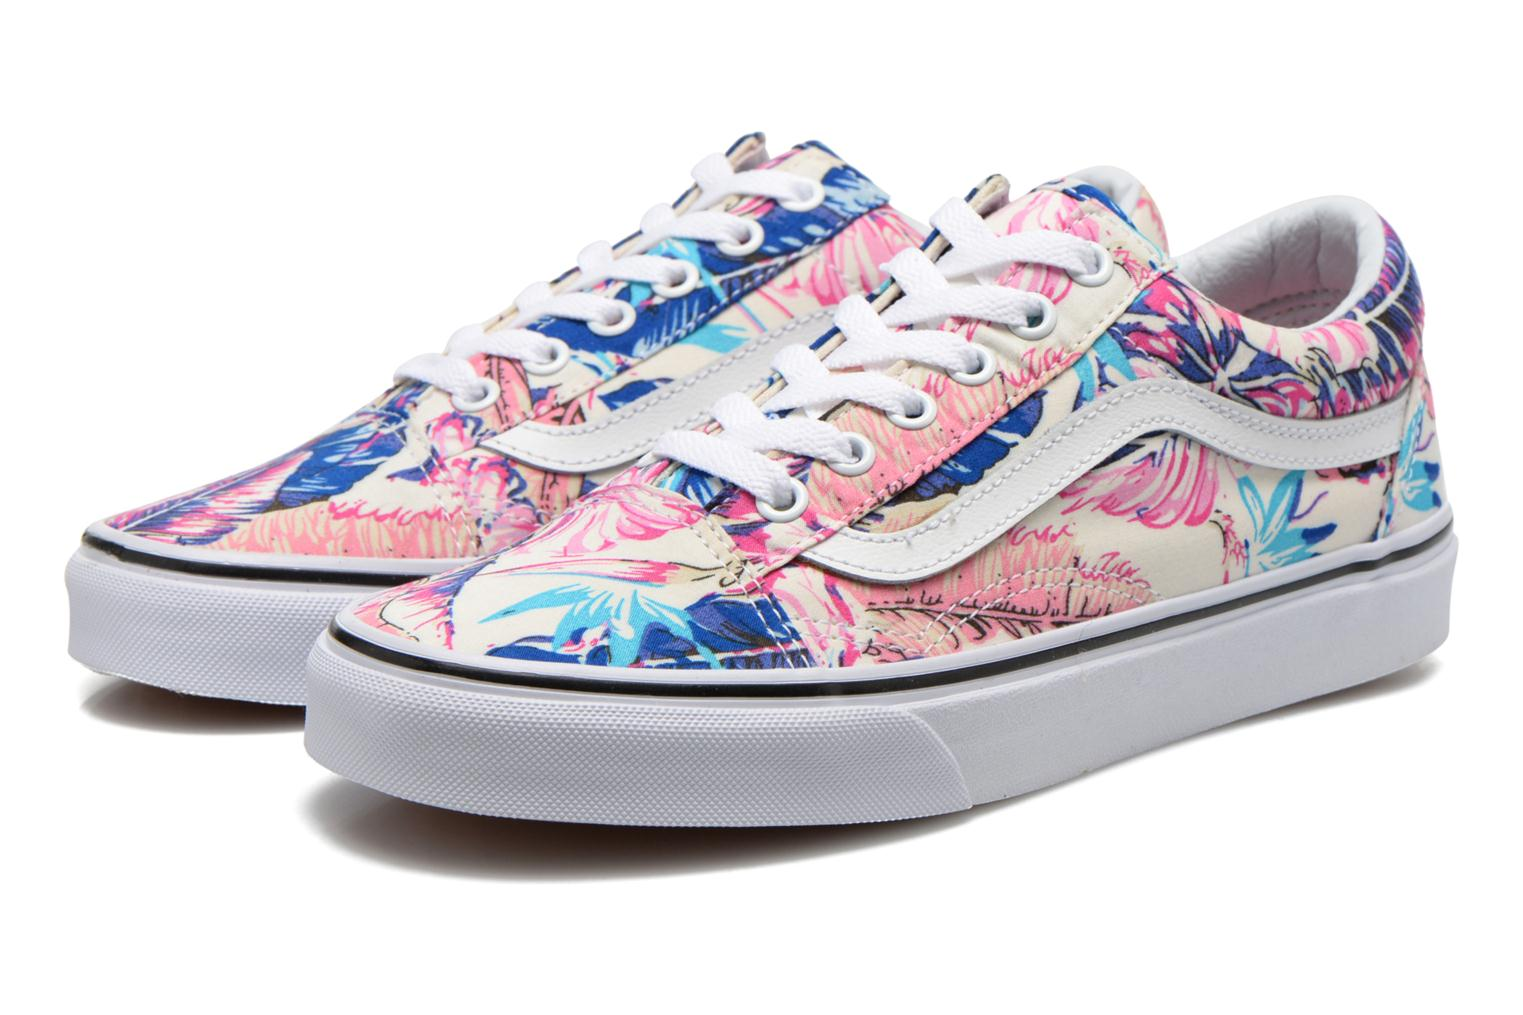 Deportivas Vans Old Skool W Multicolor vista 3/4